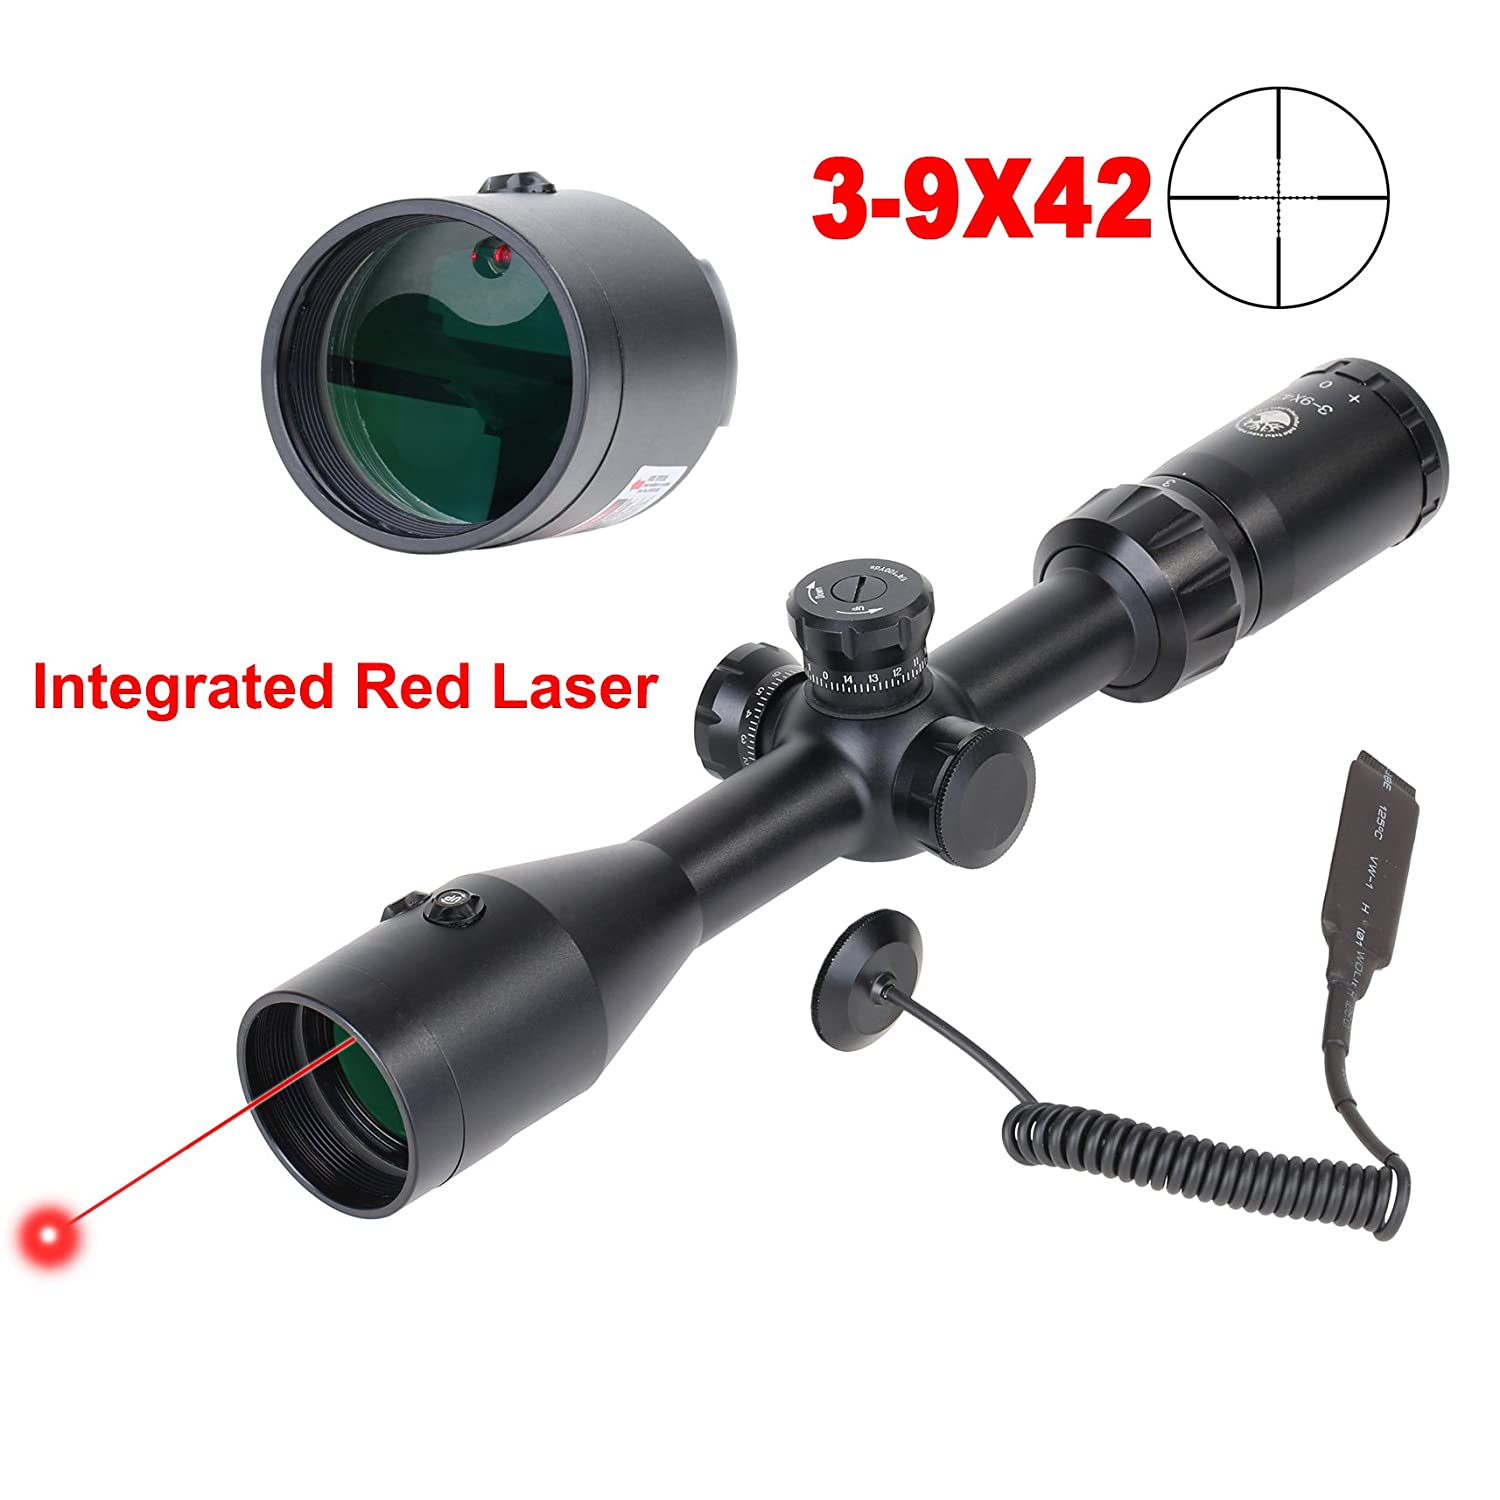 GOHIKING 3-9×42 Hunting Rifle Scope with Integrated Red Sight and P4 Sniper Reticle